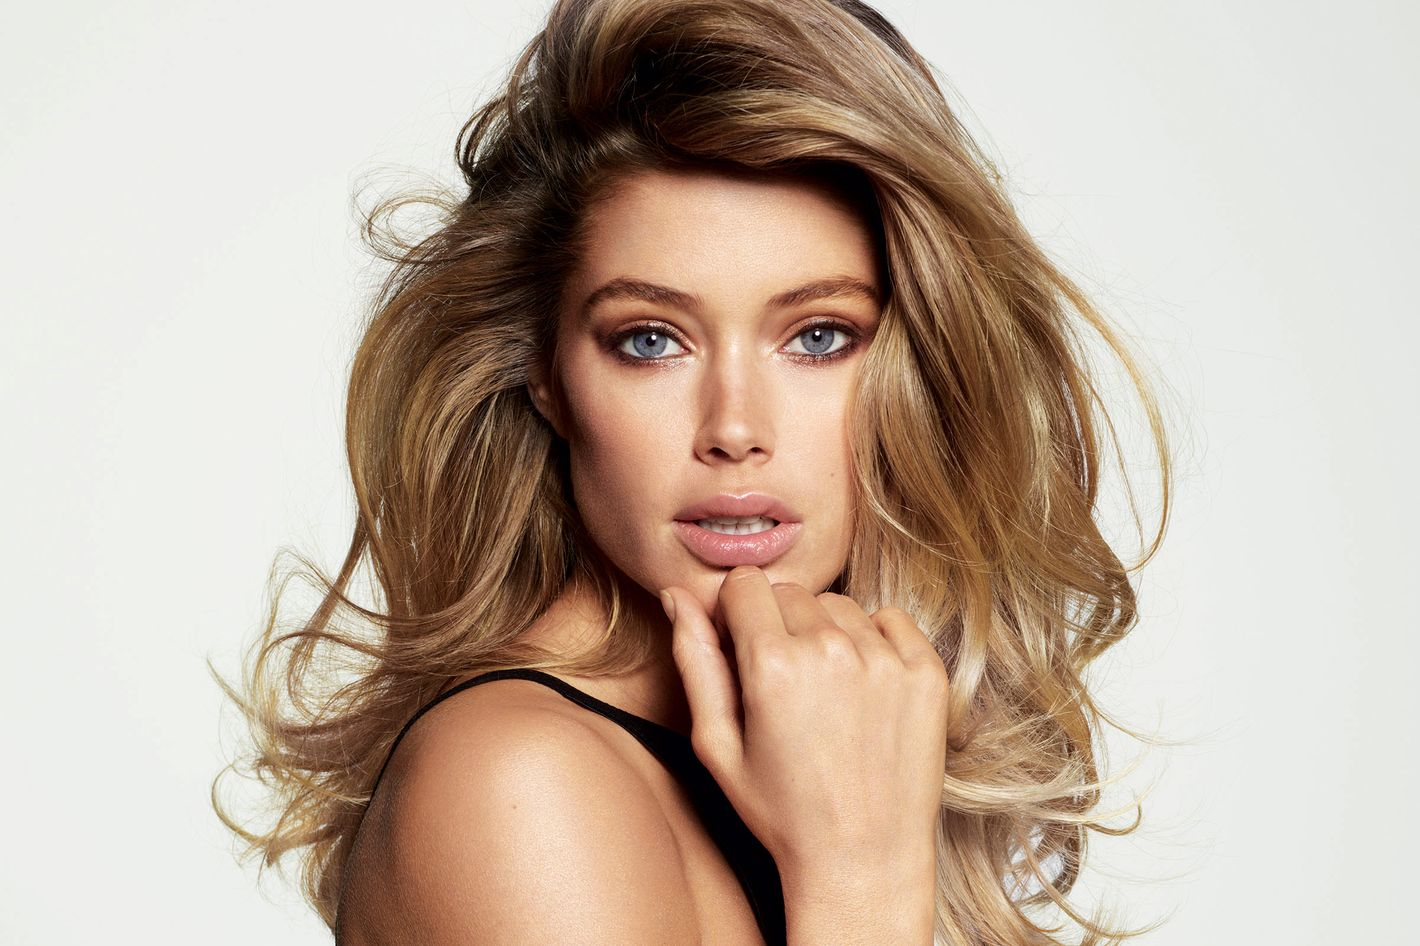 Doutzen Kroes wonder woman